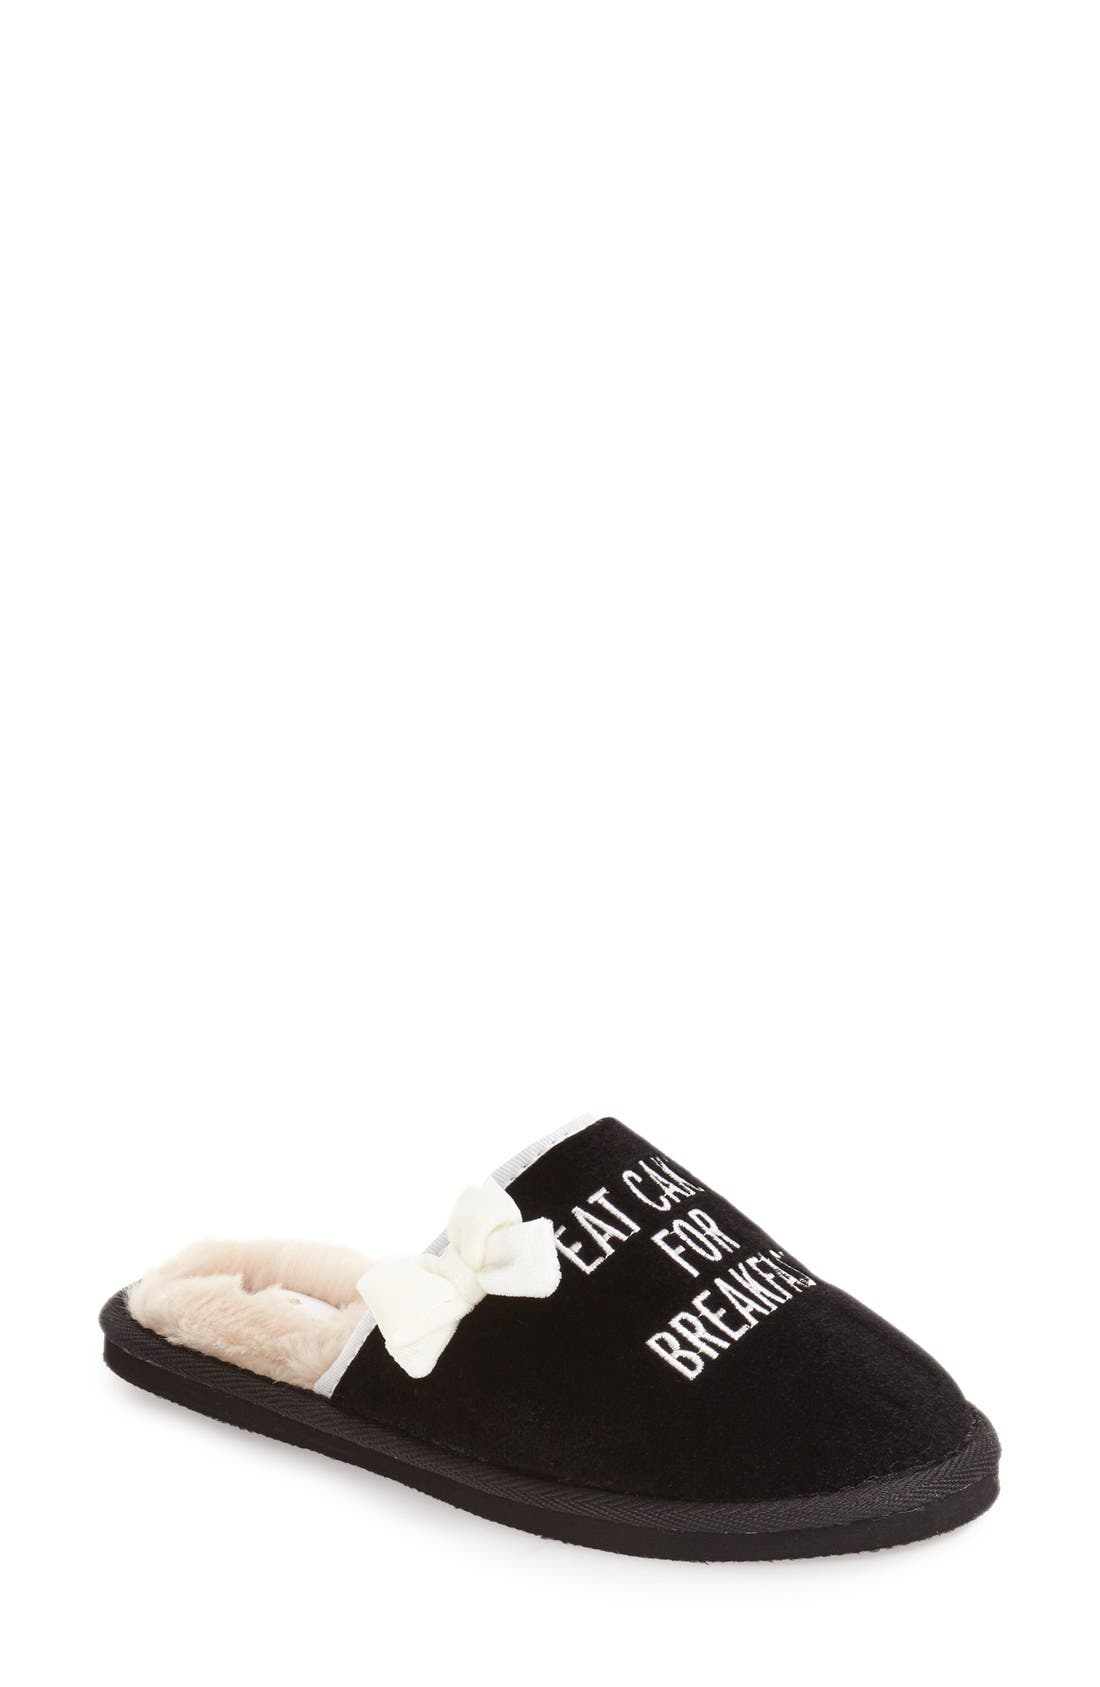 Main Image - kate spade new york 'eat cake for breakfast' slipper (Women)